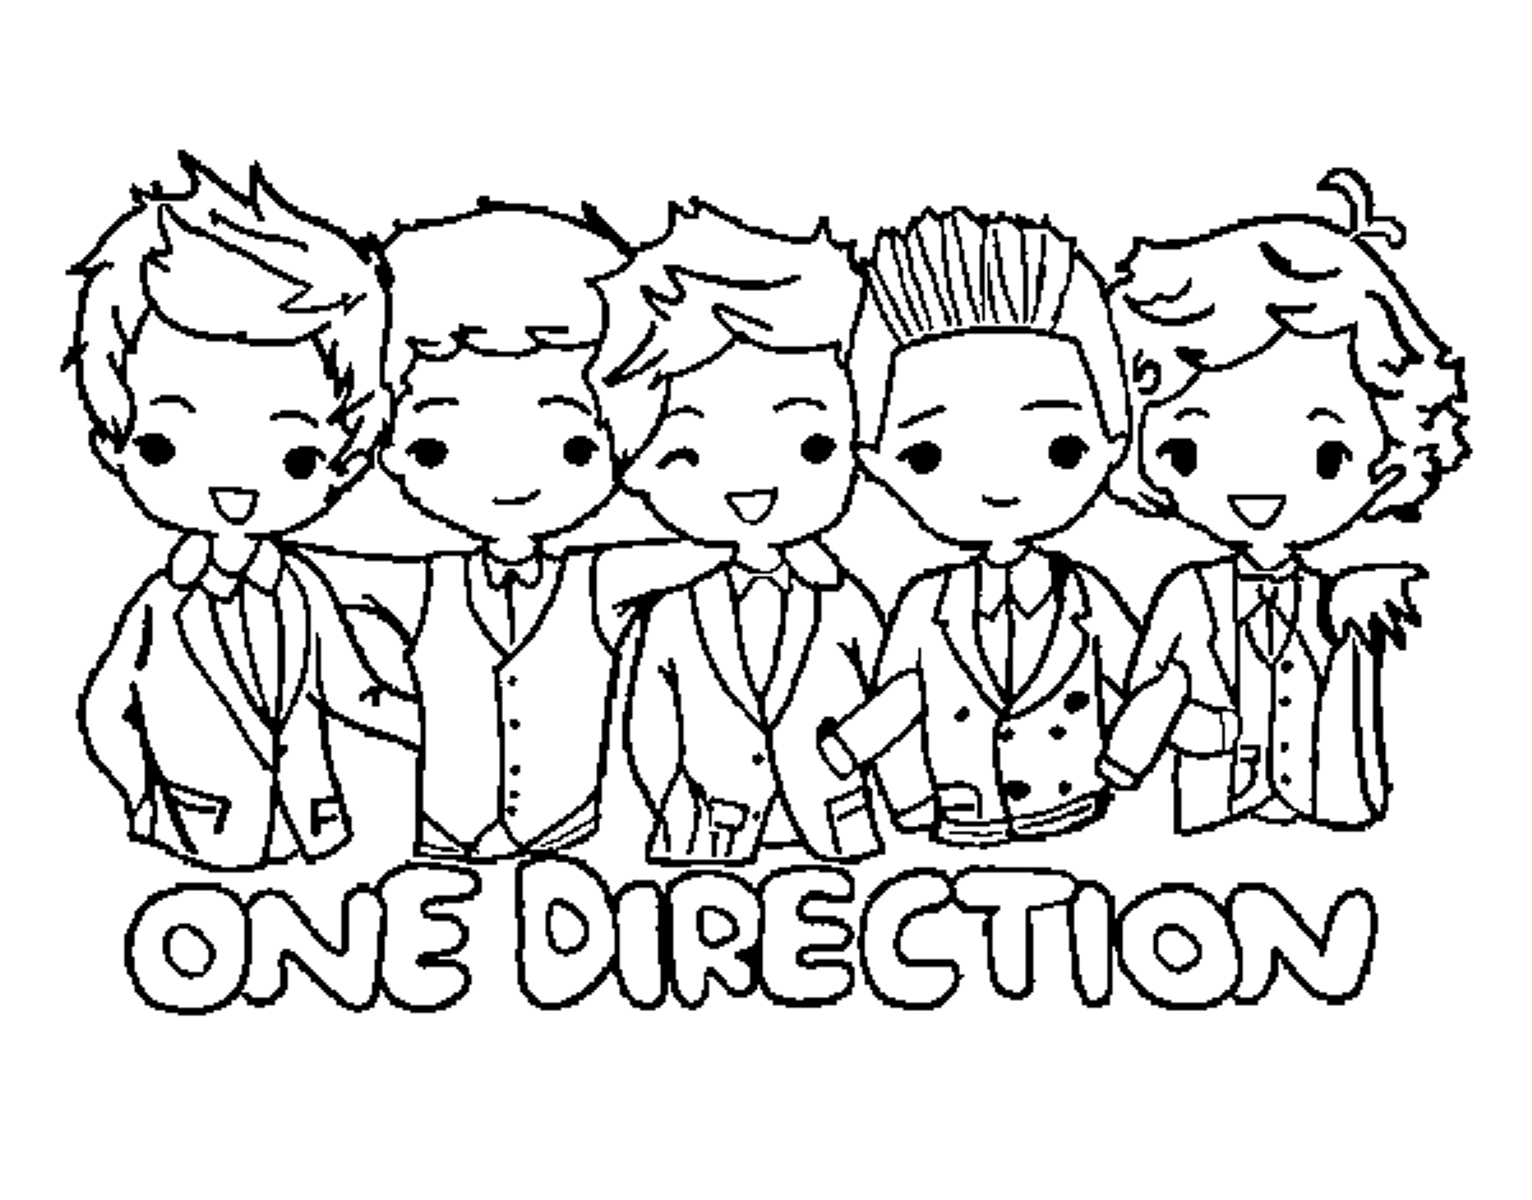 Kleurplaten One Direction Niall.One Direction Logo Coloring Pages Stuff To Make One Direction